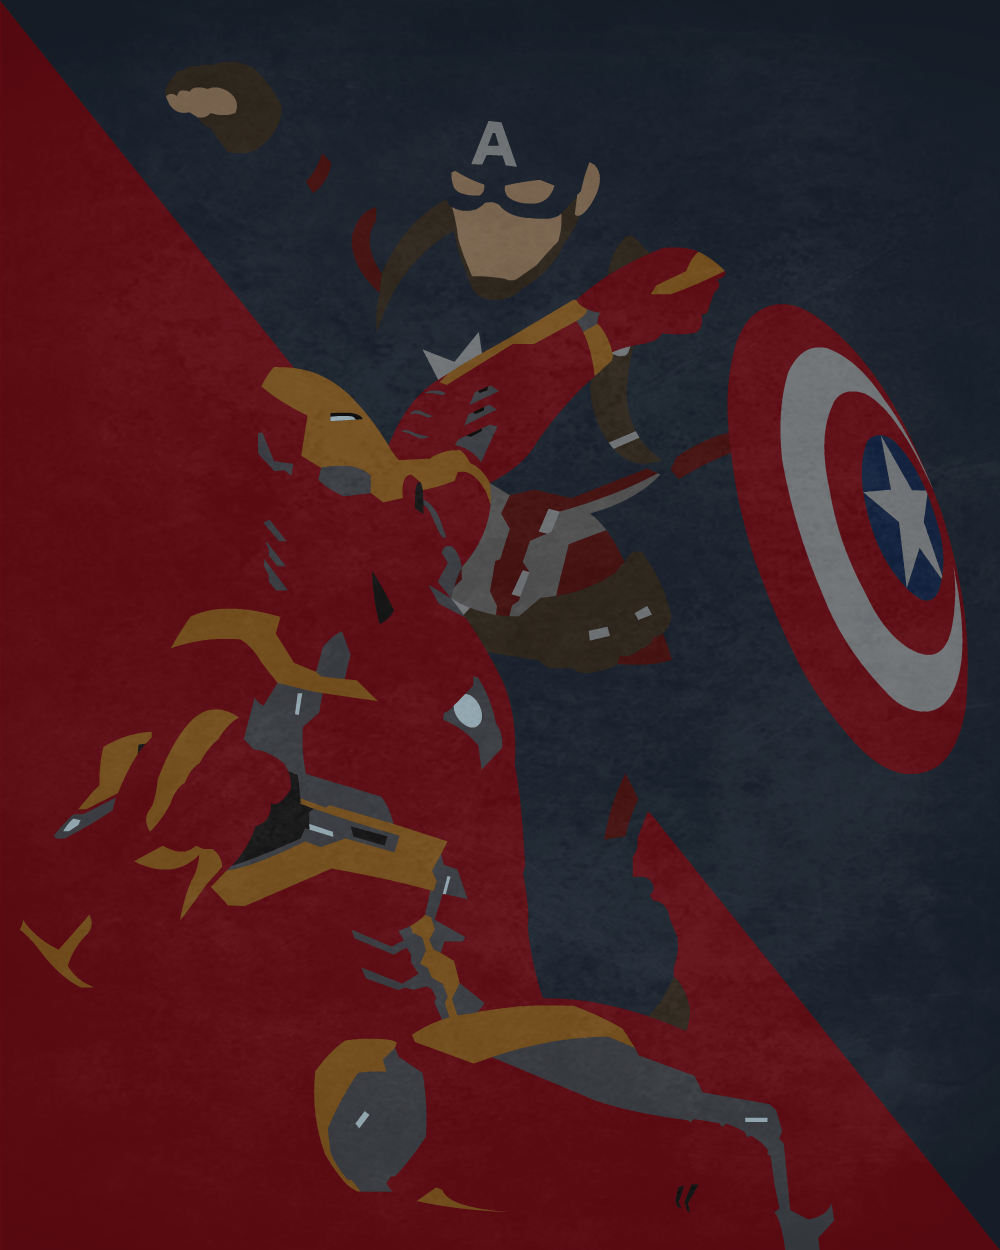 Captain America Vs Iron Man Wallpapers Wallpaper Cave